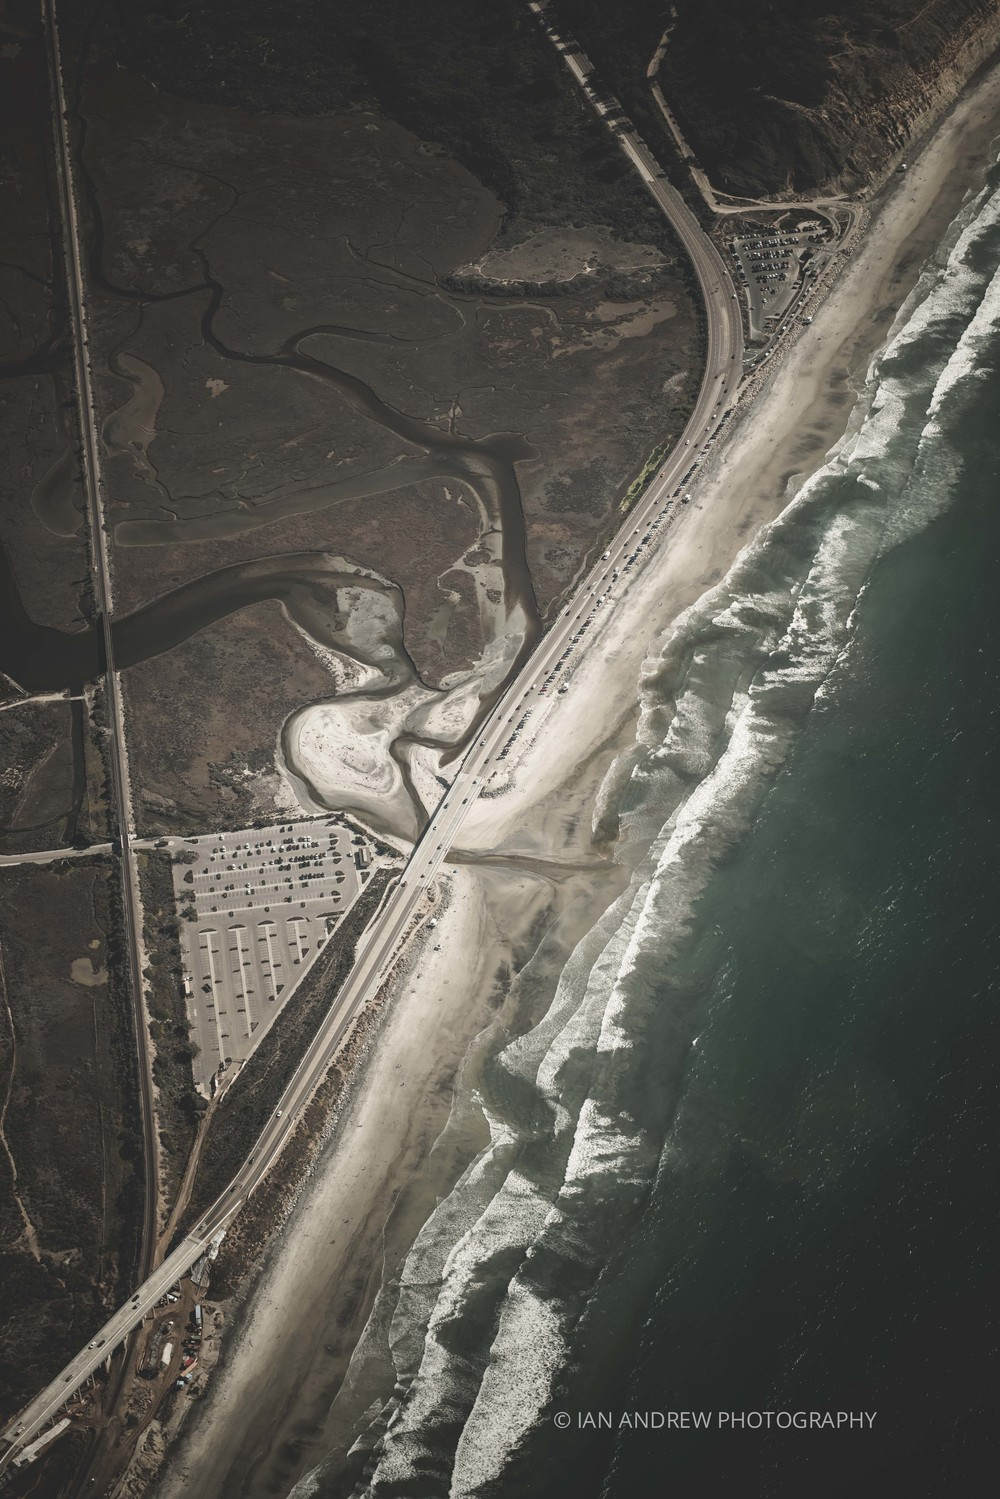 ian andrew photography aerial photography6.jpg